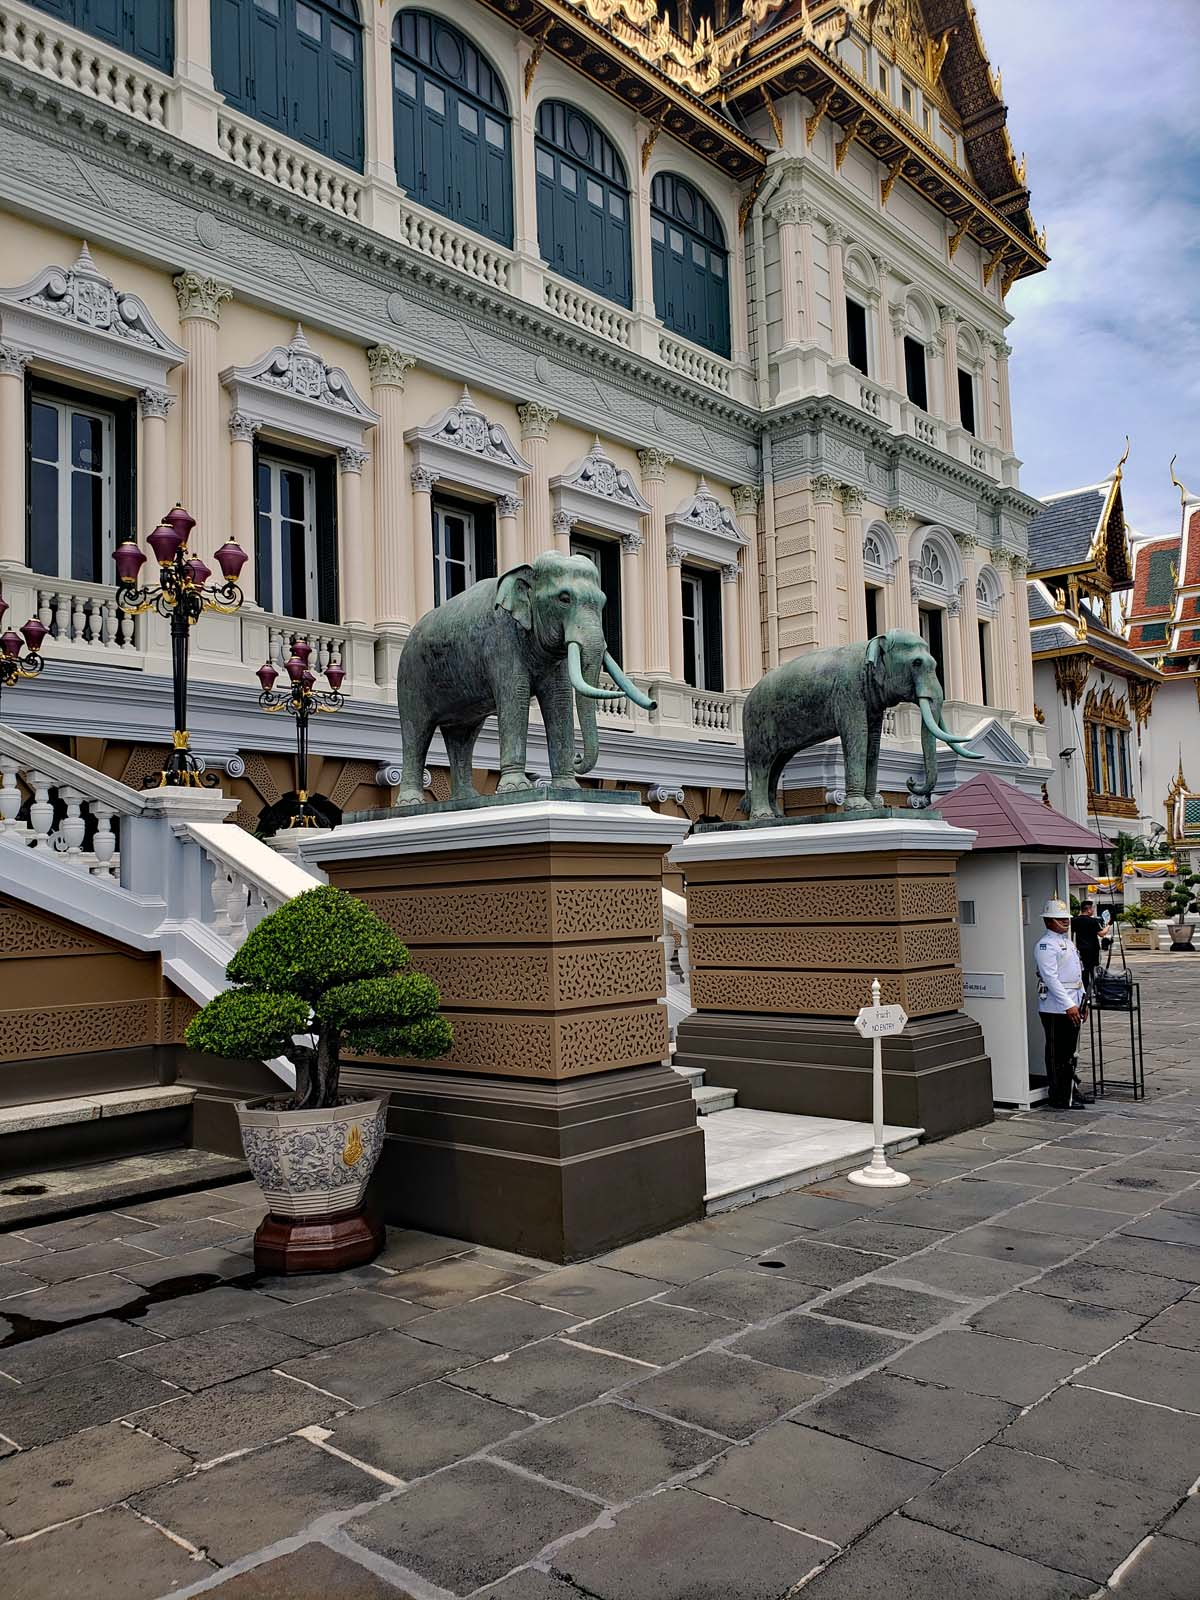 The entrance to the Grand Palace with the guard.